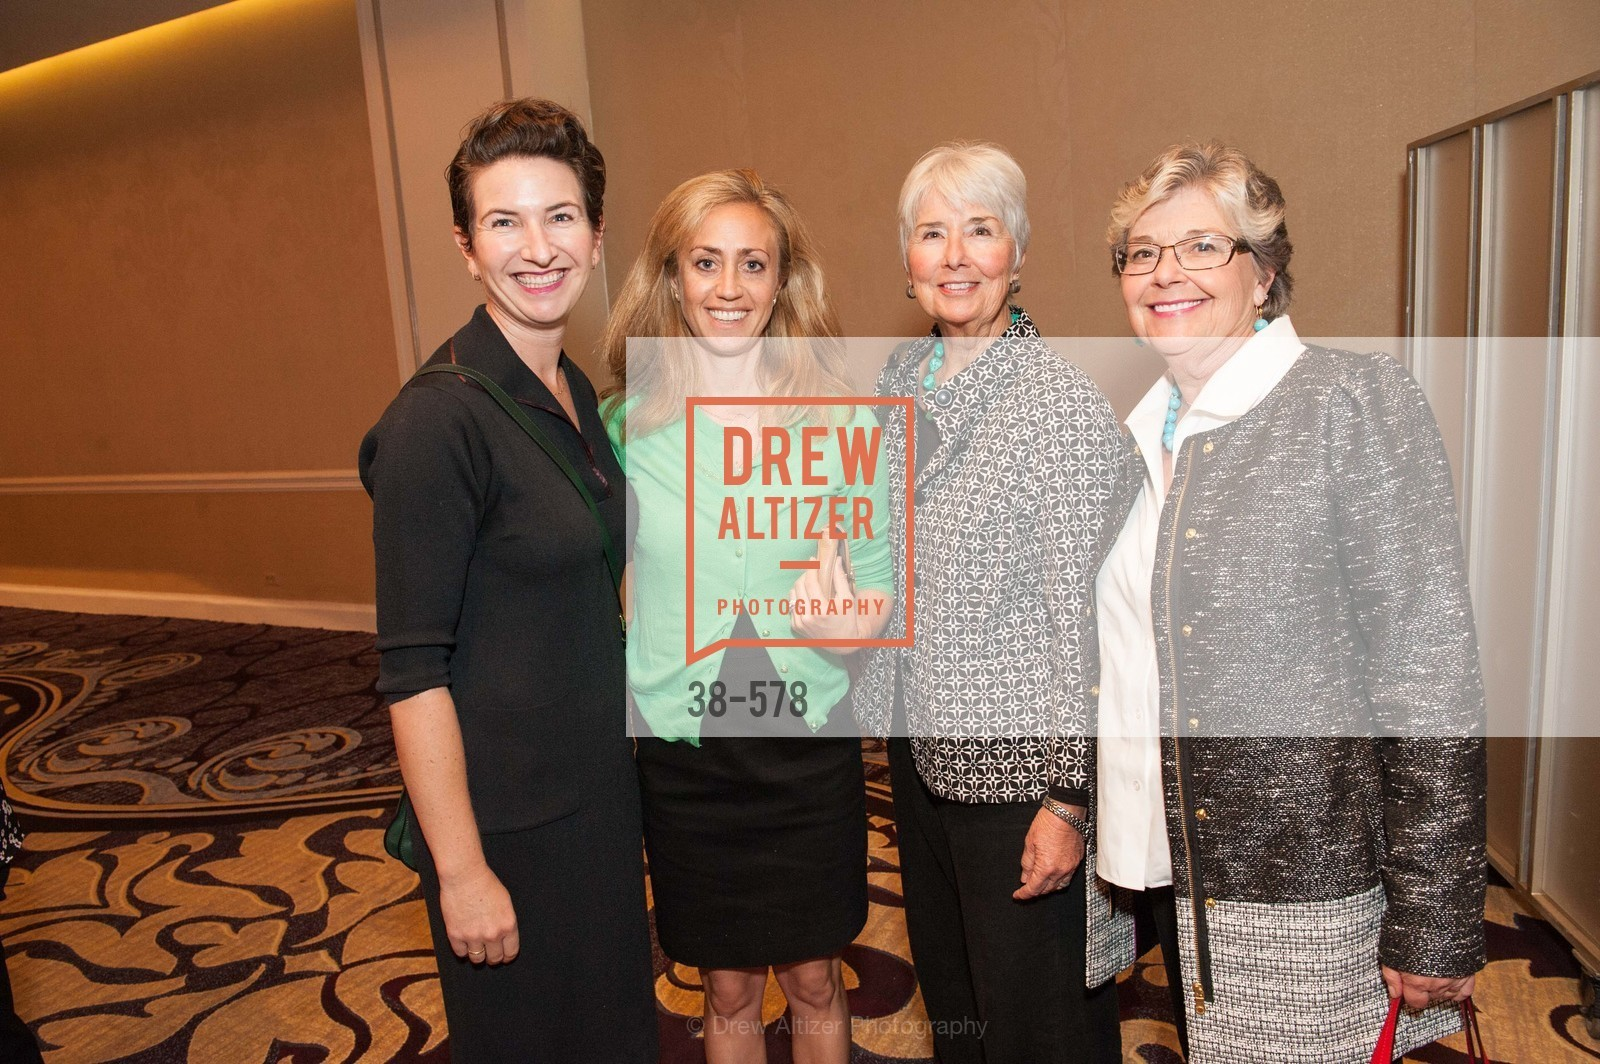 Emily O'Keefe, Charlotte Prime, Vita Walsh, Nancy Sanders, HOMELESS PRENATAL Annual Luncheon 2014, US, September 30th, 2014,Drew Altizer, Drew Altizer Photography, full-service agency, private events, San Francisco photographer, photographer california